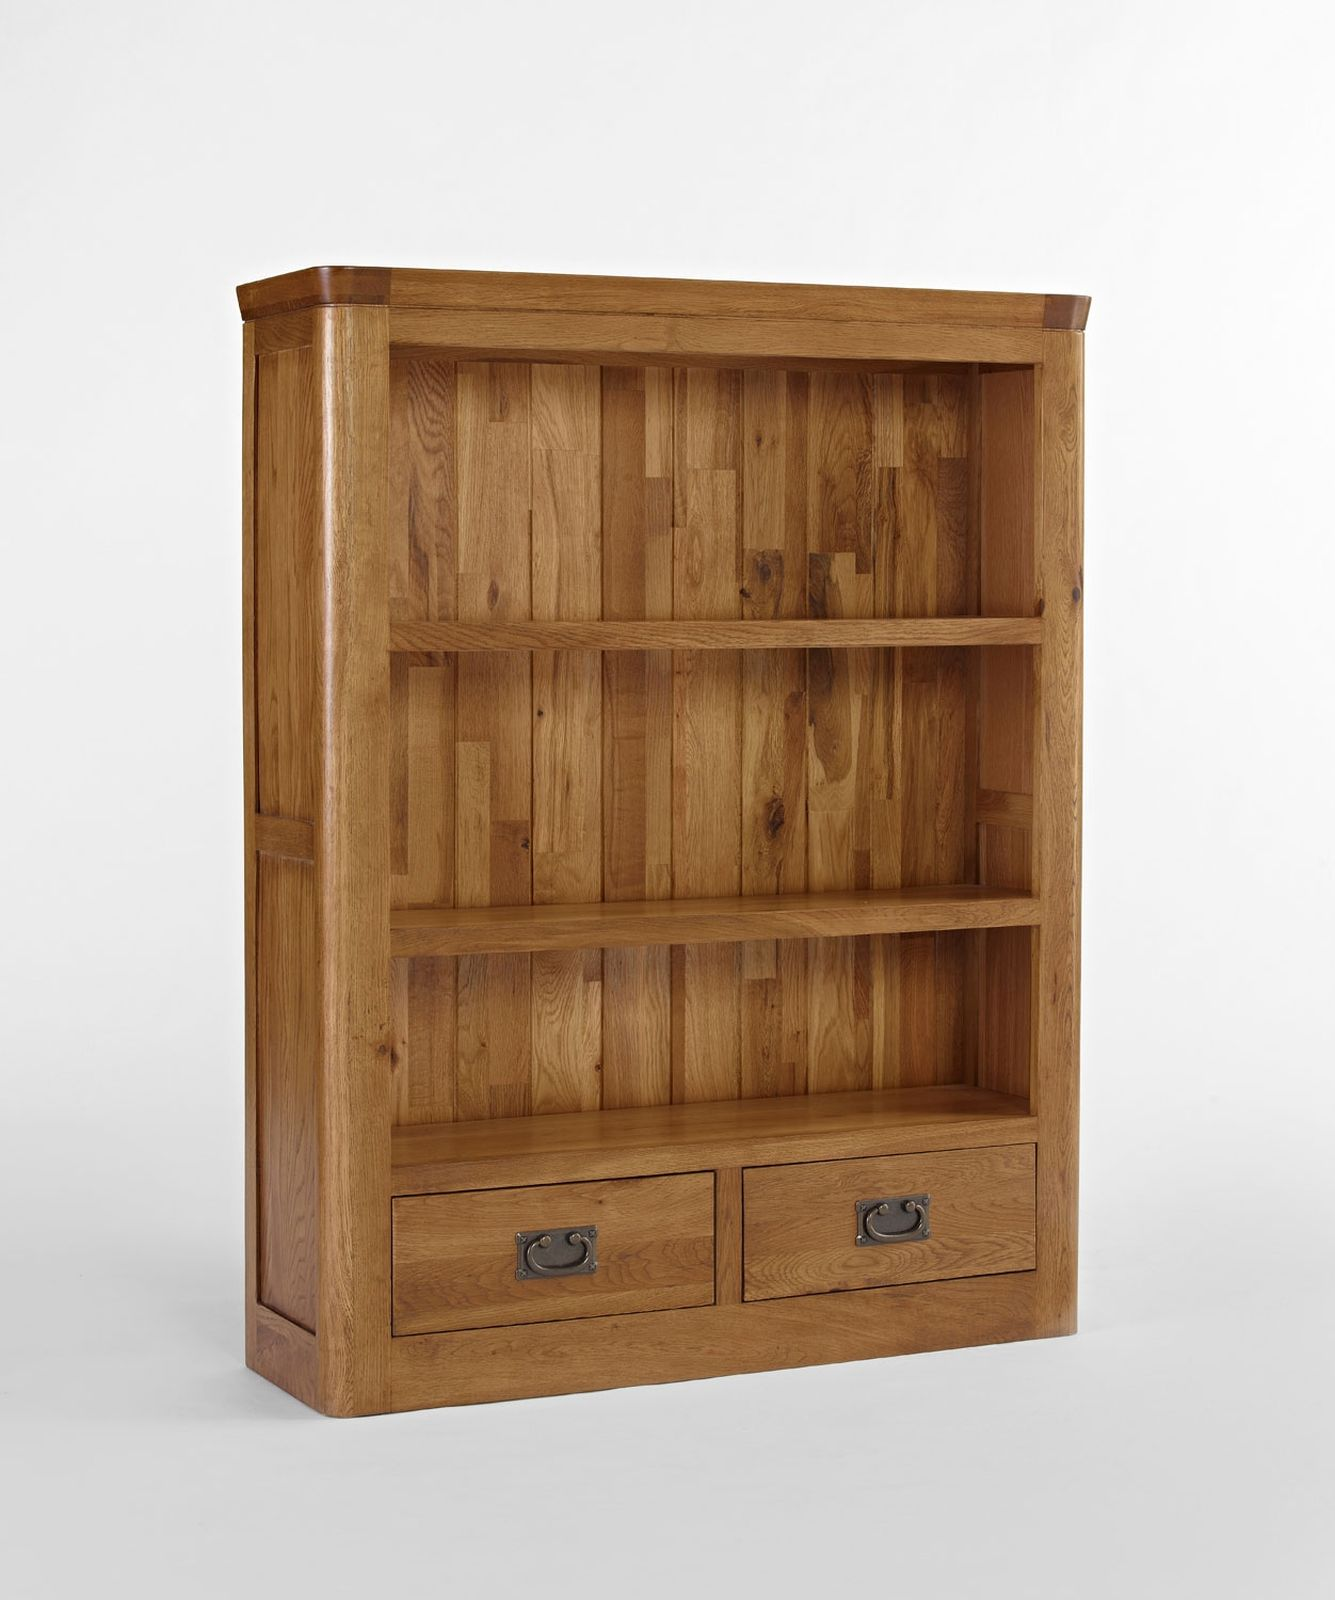 Dalmore solid oak bedroom furniture small bookcase with for Bedroom bookshelves